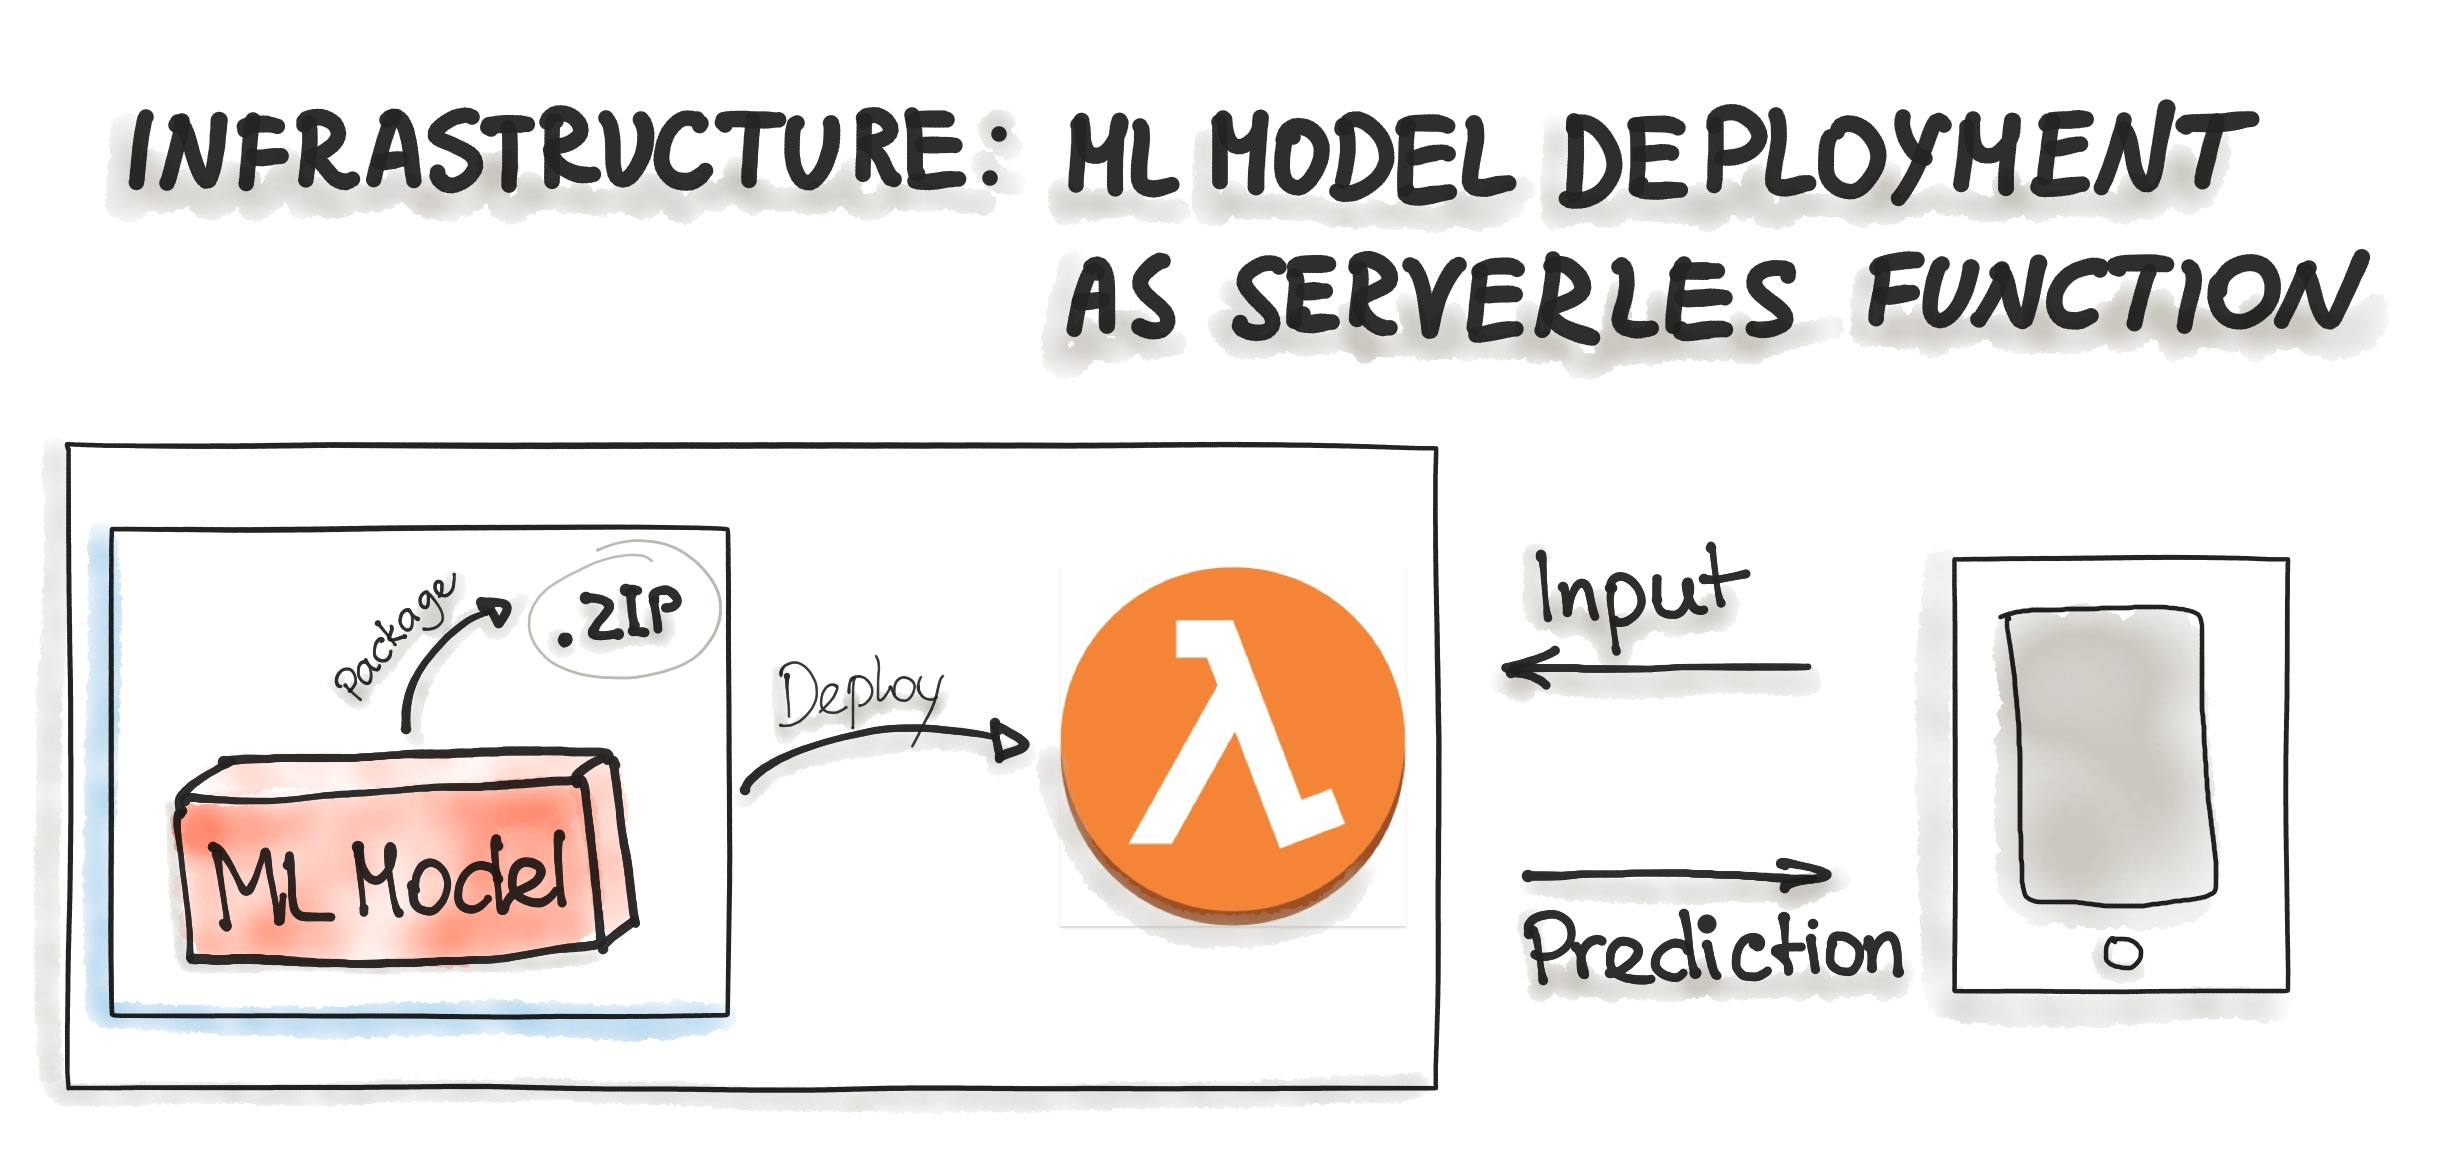 Serverless Infrastructure for Model Deployment